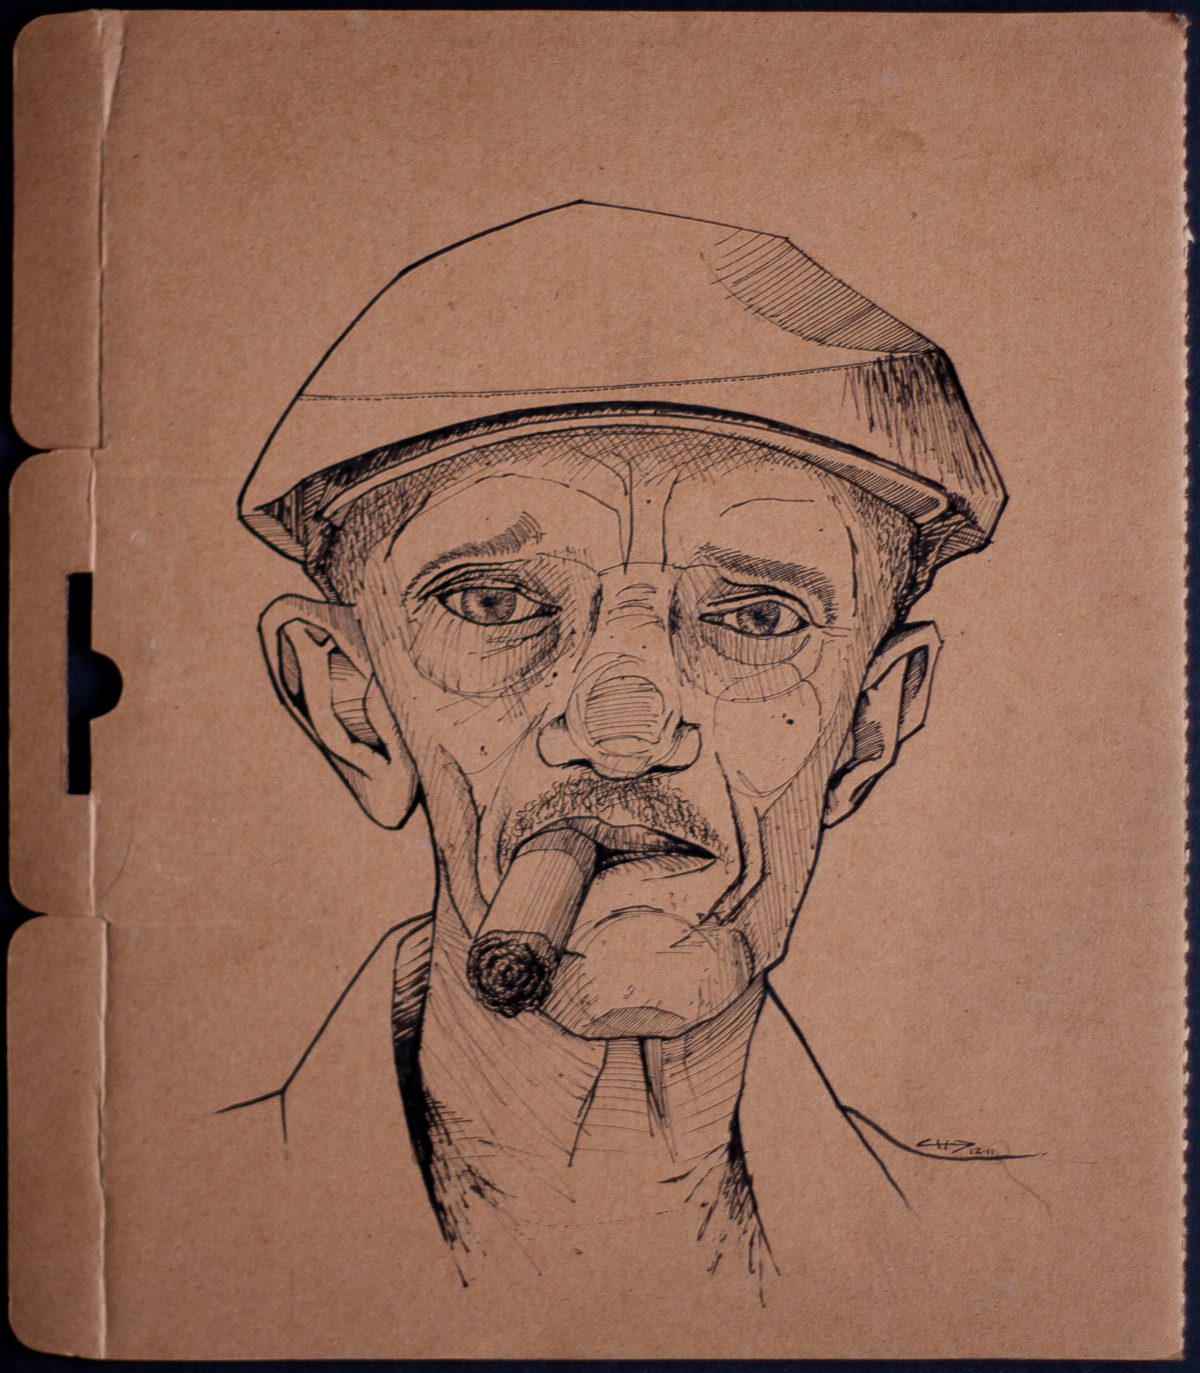 Man with cigar - 25x30cm, ink on cardboard, cardboard, ink, ch3